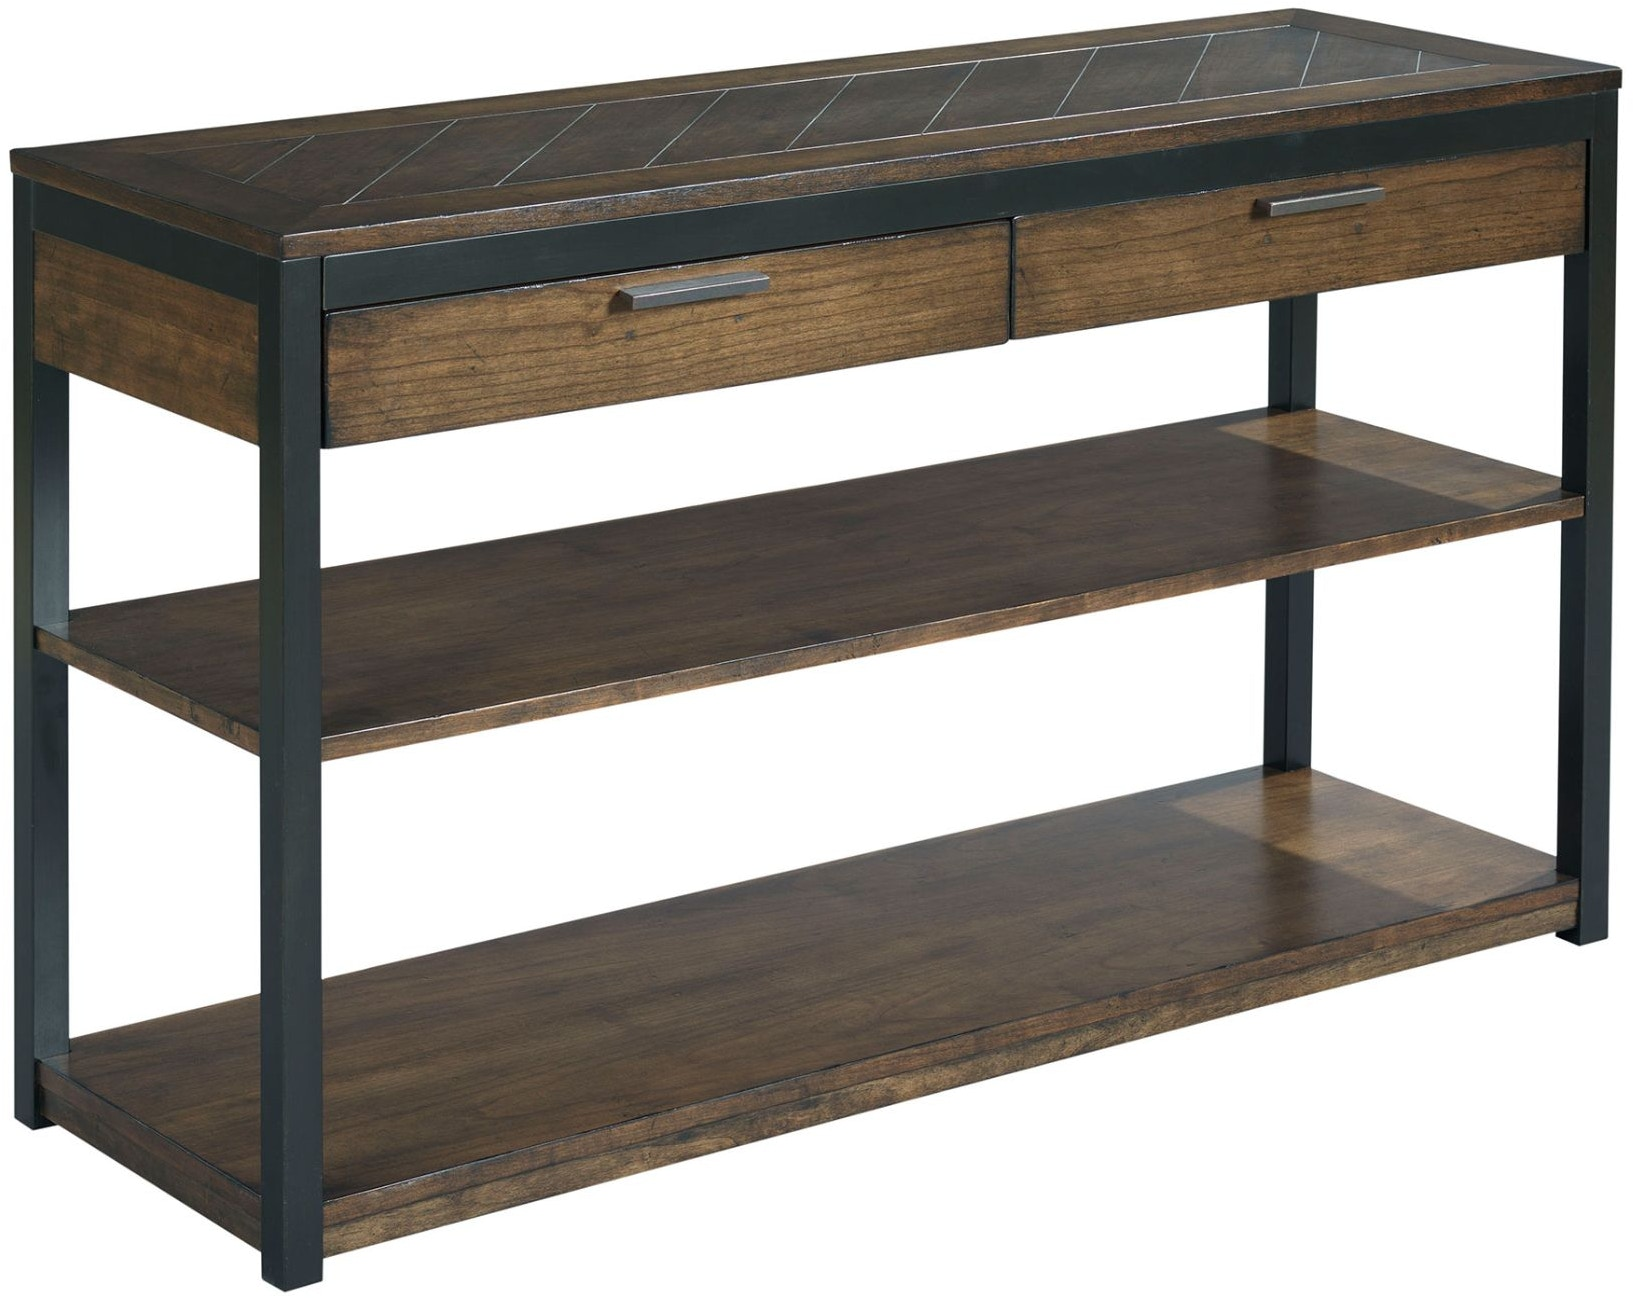 Hammary living room sofa table 529 925 flemington department hammary sofa table 529 925 geotapseo Image collections